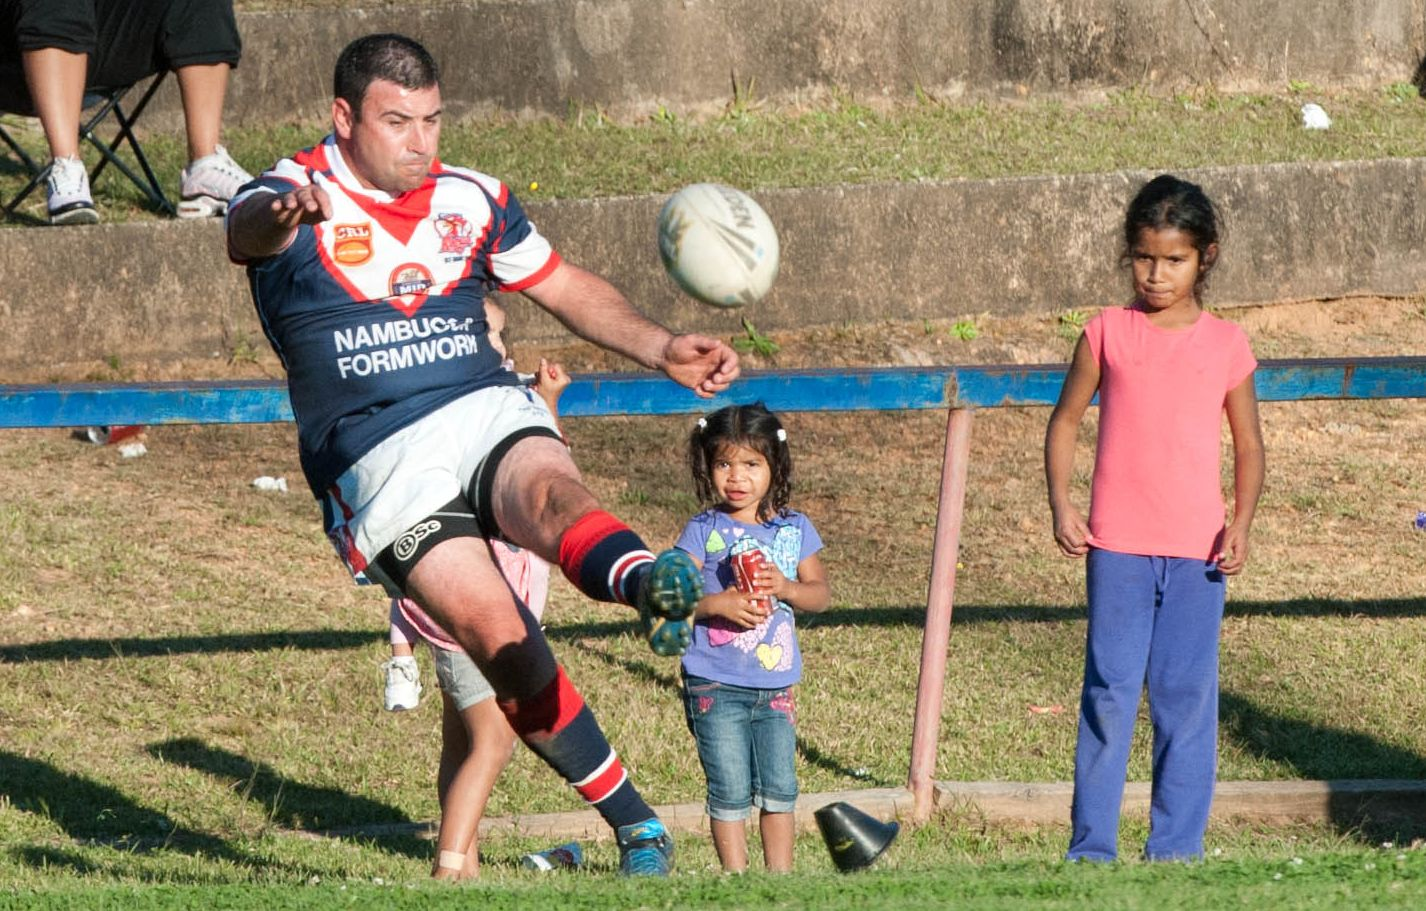 Michael Ronan continued his good form at Coramba with two tries and five goals in his sides 50-0 win over Orara Valley.